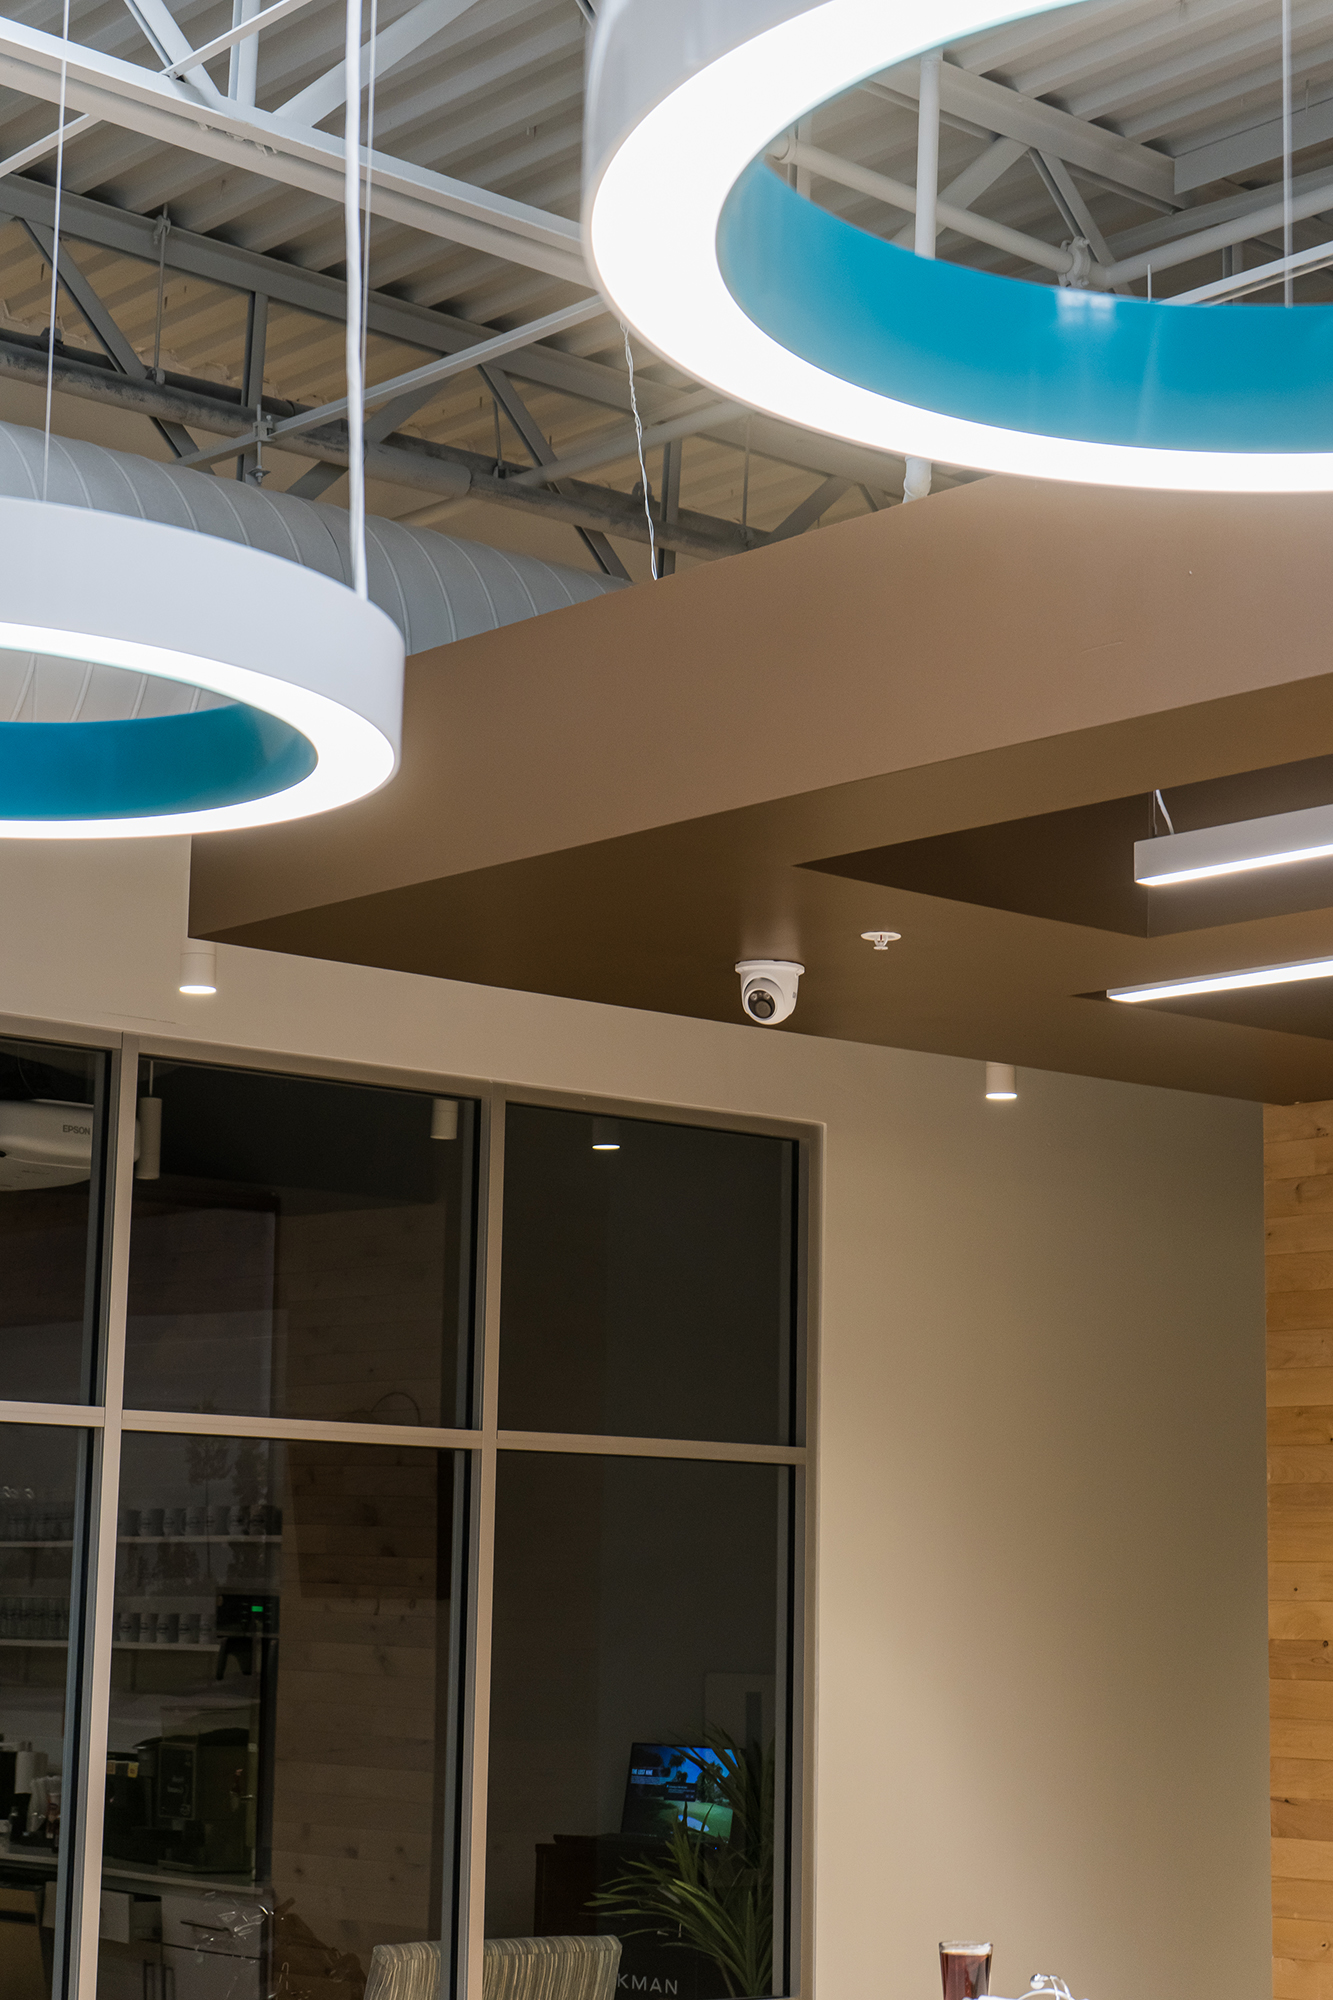 Large, round light hanging from a white ceiling